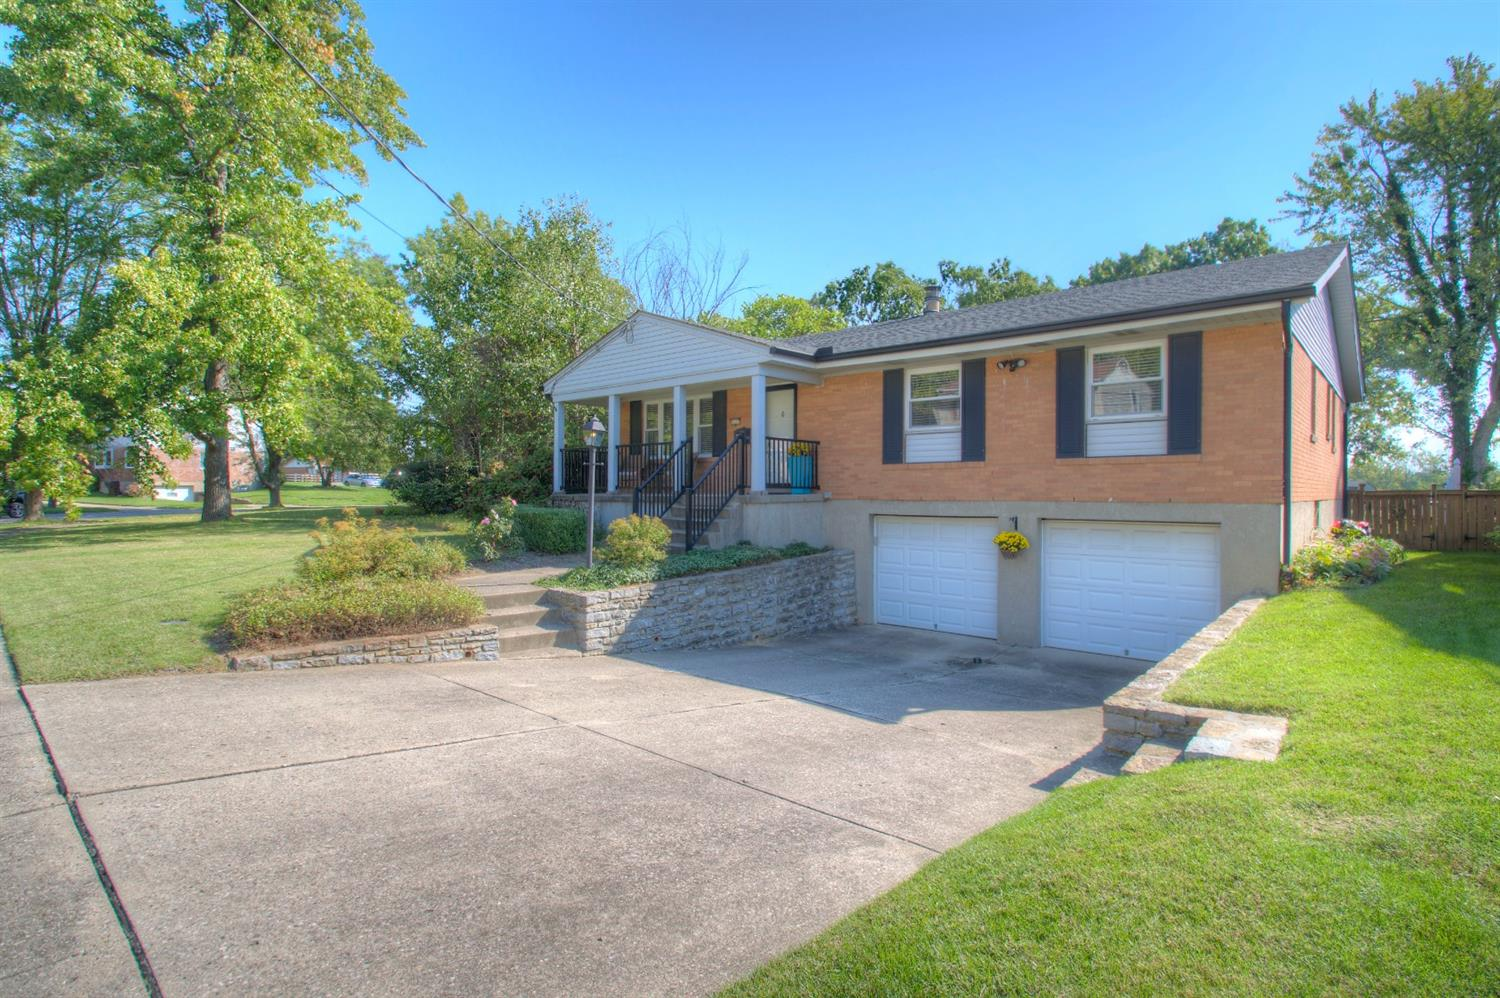 3227 Autumn Lane, Green Twp, Ohio 45239, 3 Bedrooms Bedrooms, 10 Rooms Rooms,3 BathroomsBathrooms,Single Family Residence,For Sale,Autumn,1717302